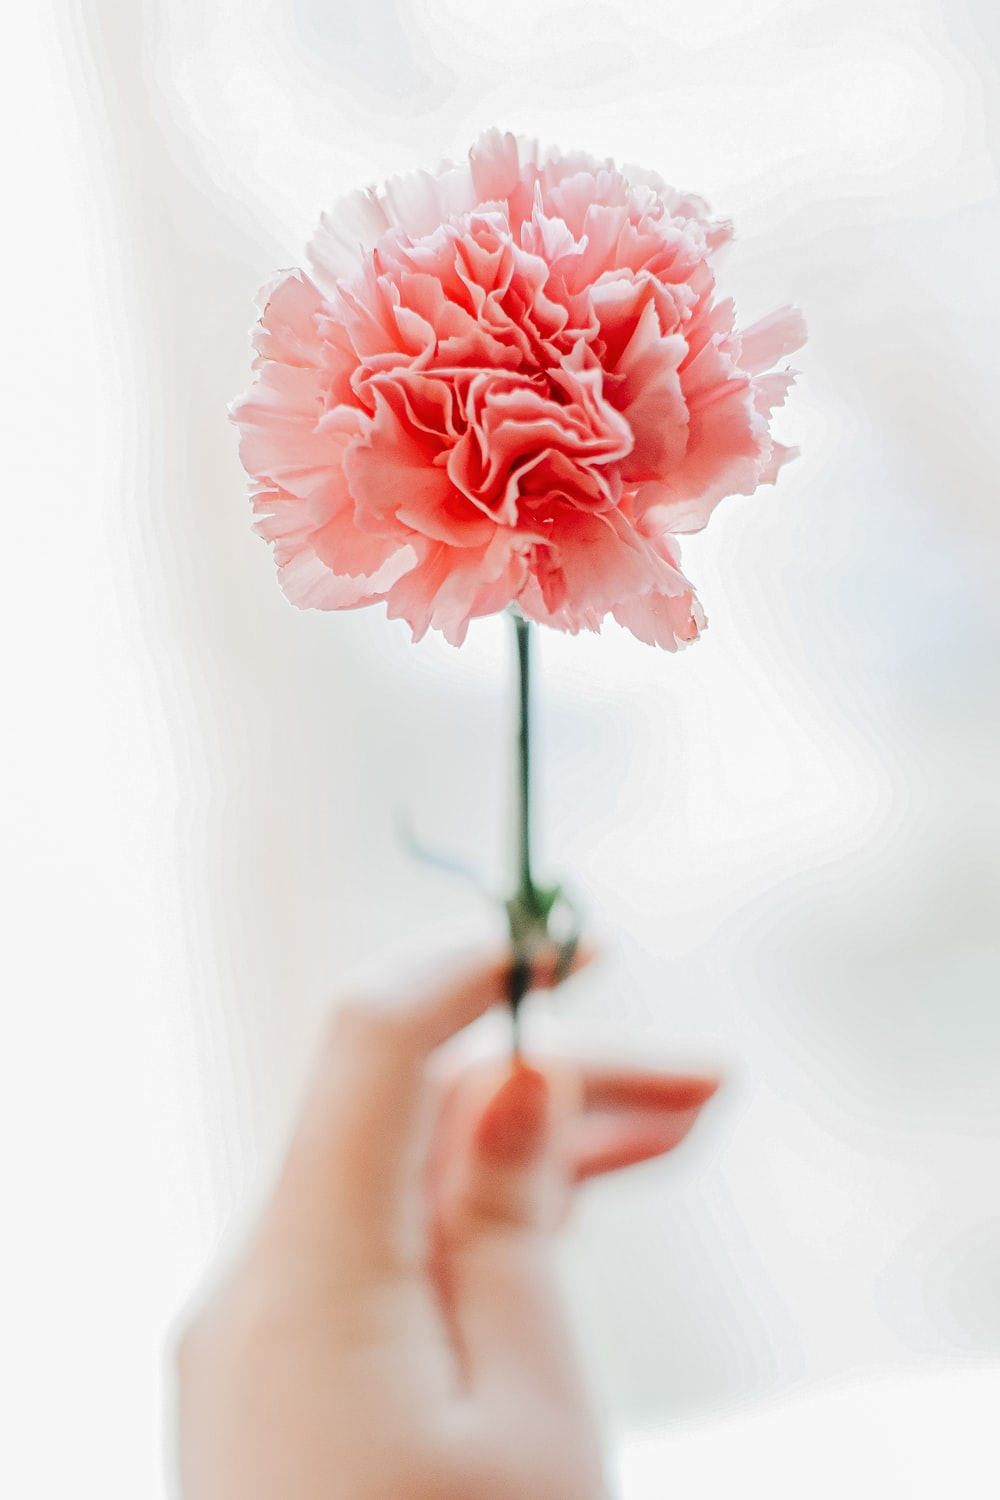 person holding pink rose in close up photography